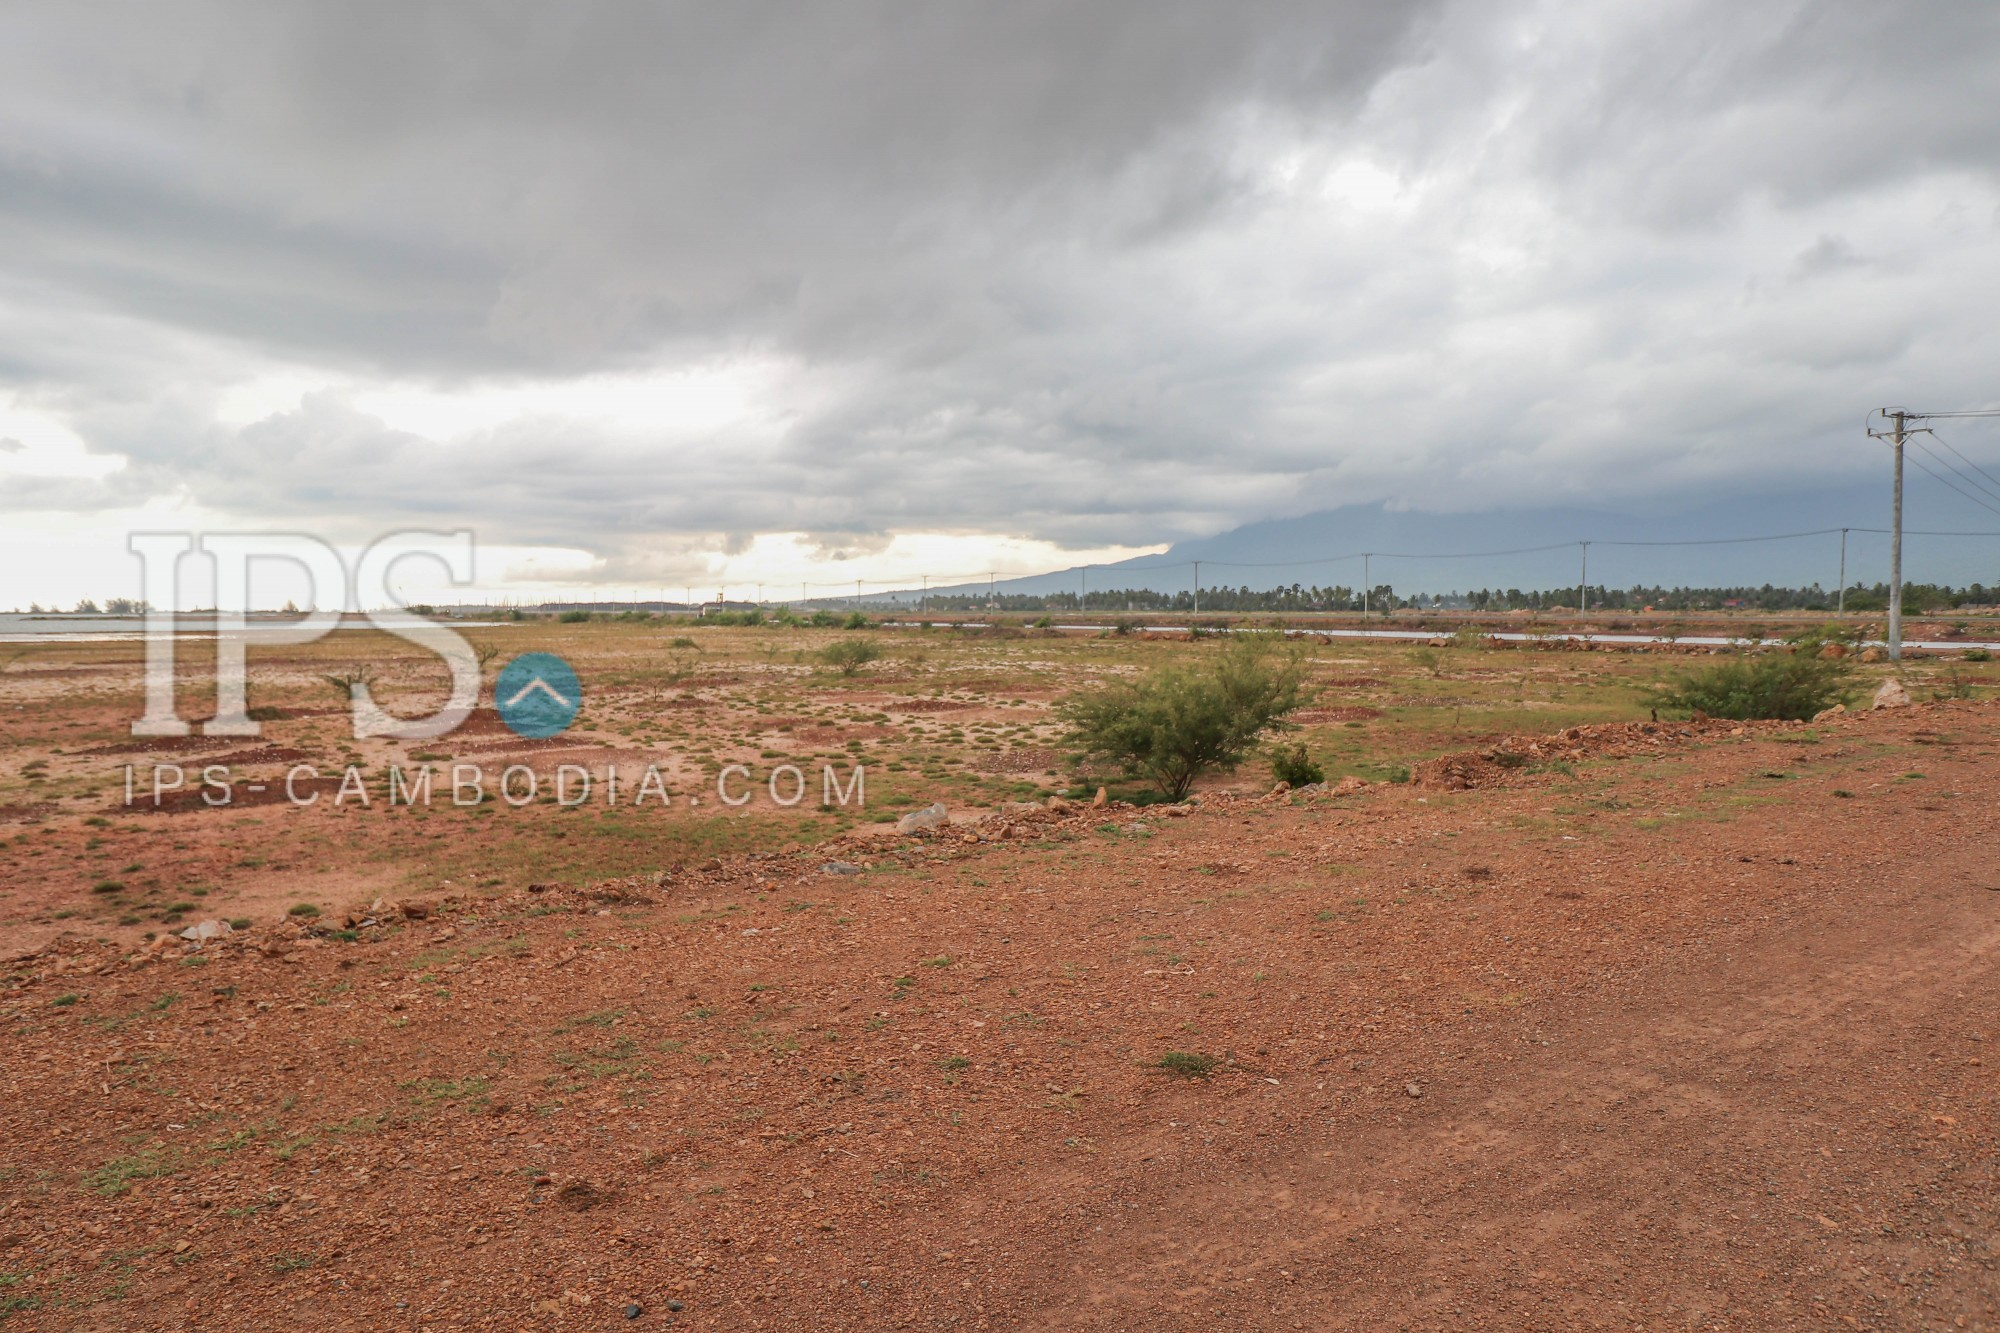 100 Hectares Land for Sale - Kampot ( Economic Zone Location)